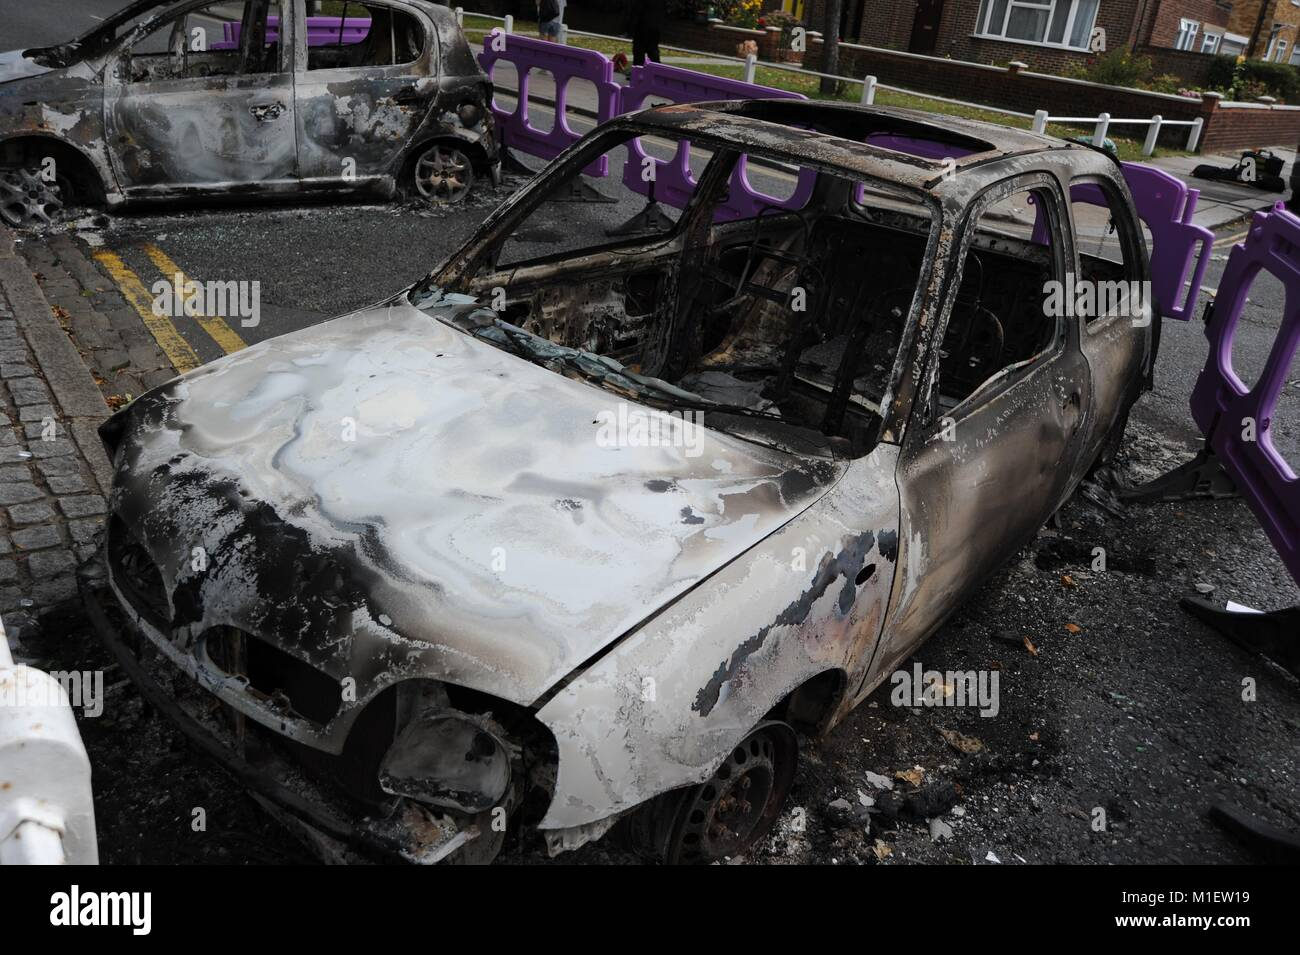 London Riots, the aftermath - Stock Image